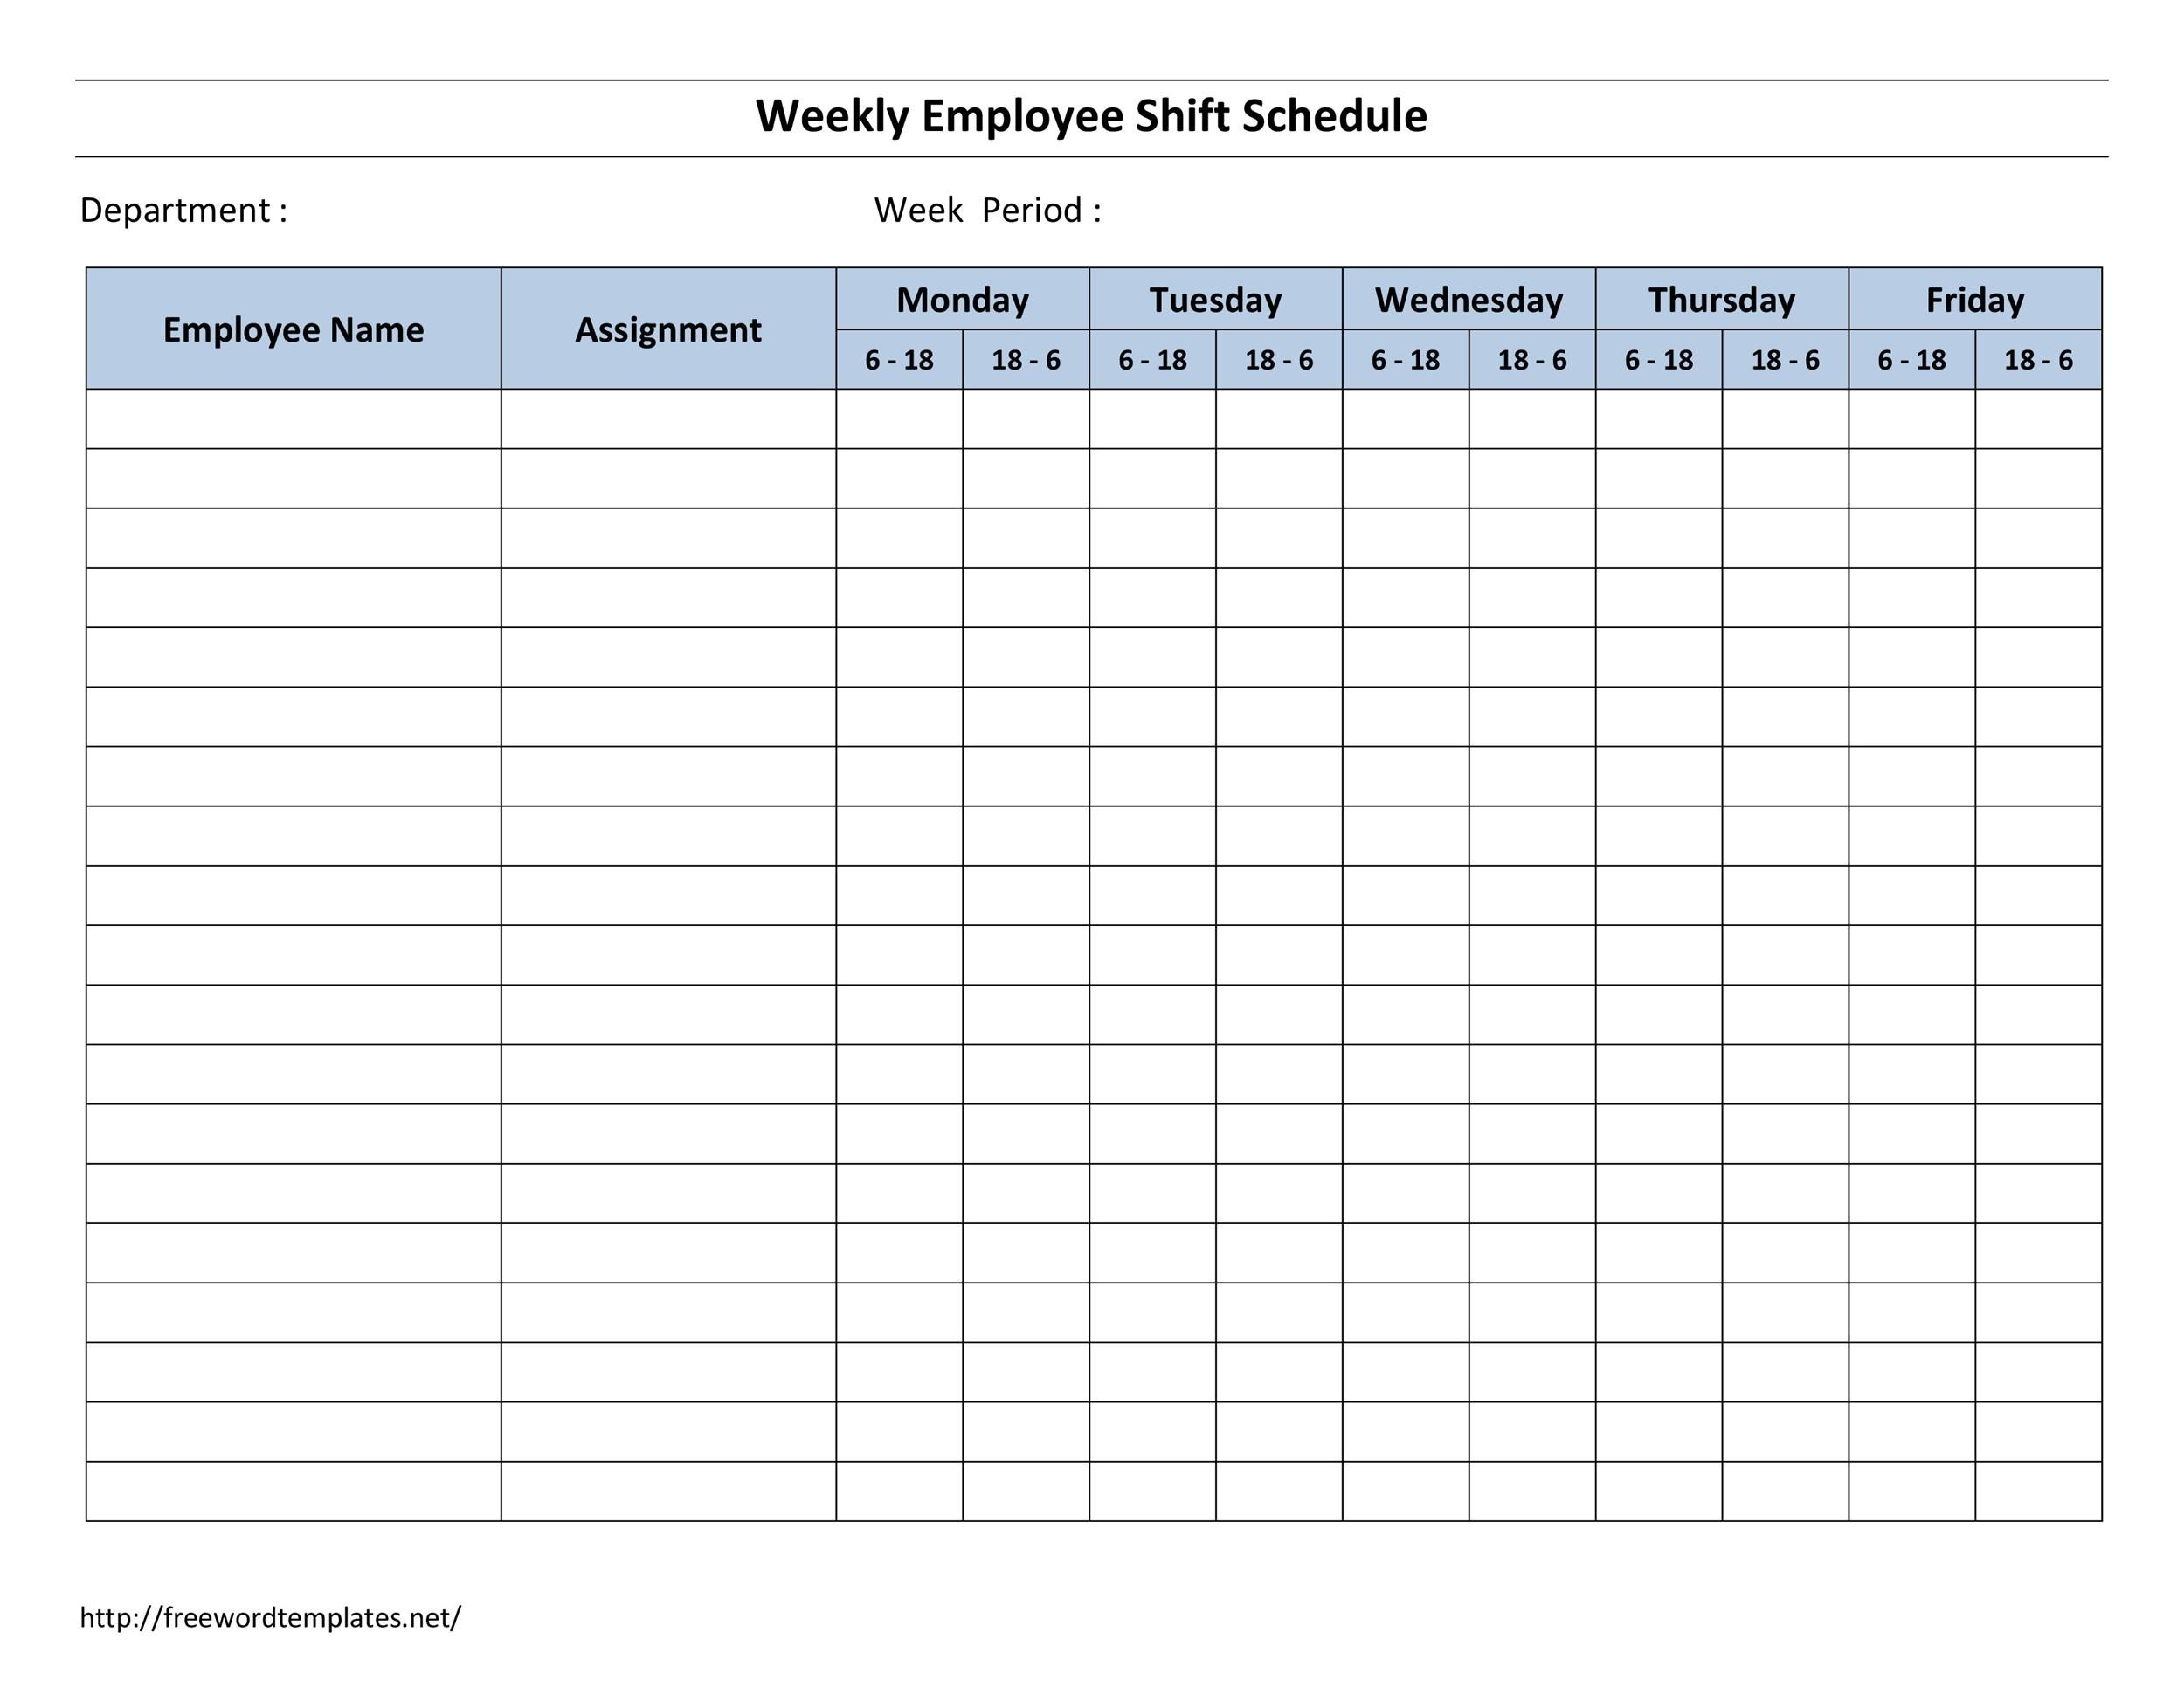 14 Dupont Shift Schedule Templats for any Company Free - Template Lab - work shift calendar template